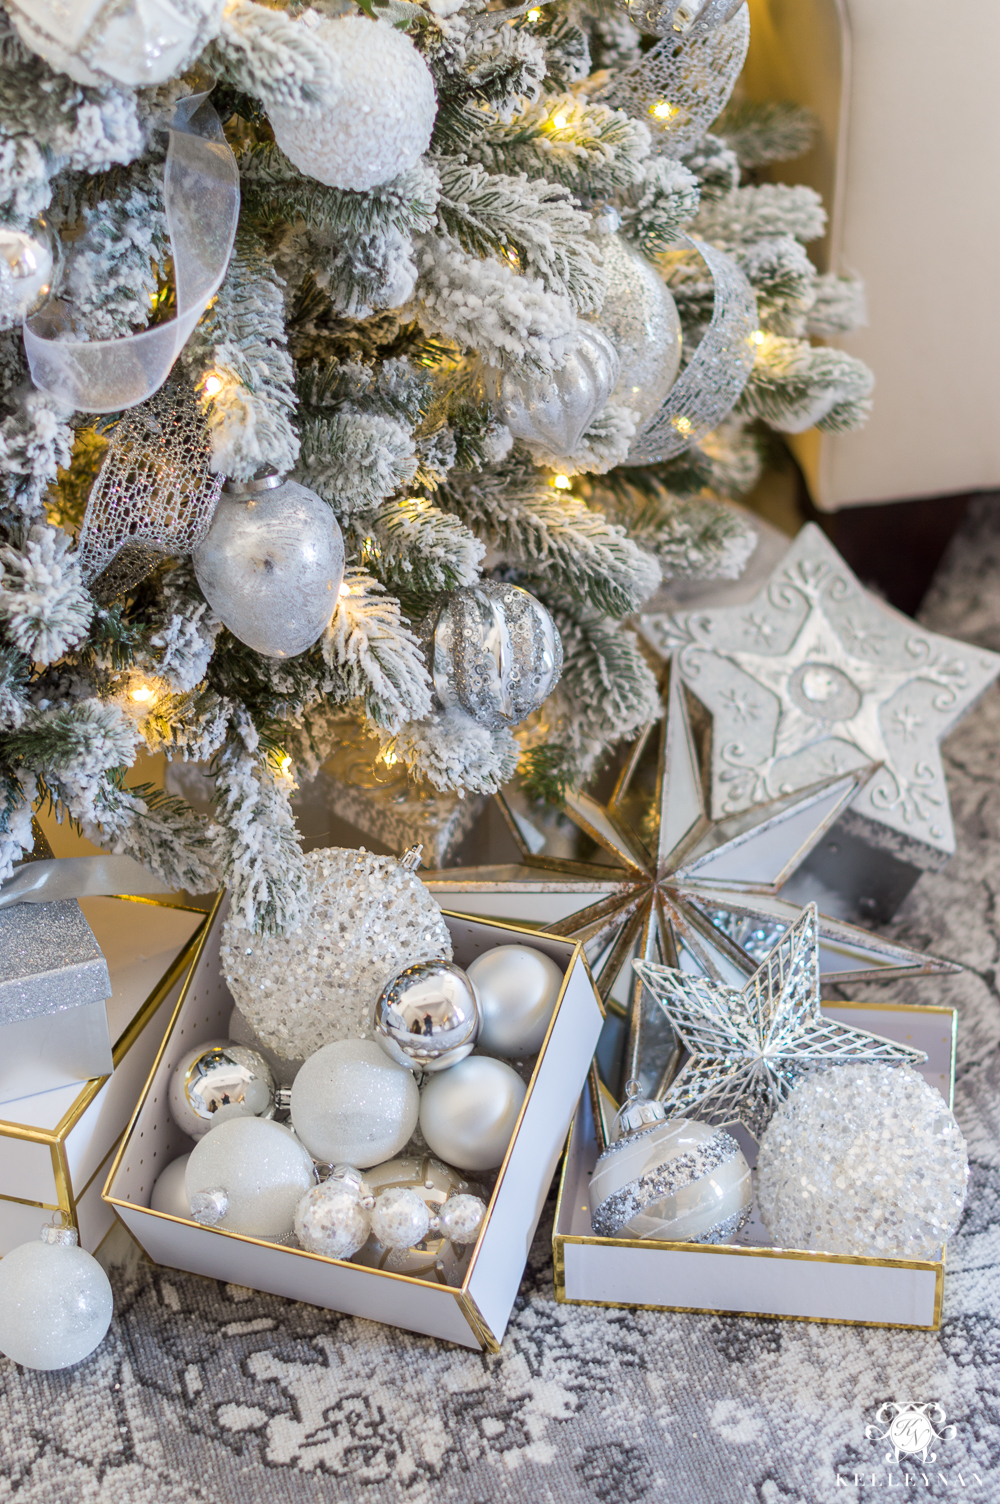 How to style the bottom of a Christmas tree with packages and ornaments